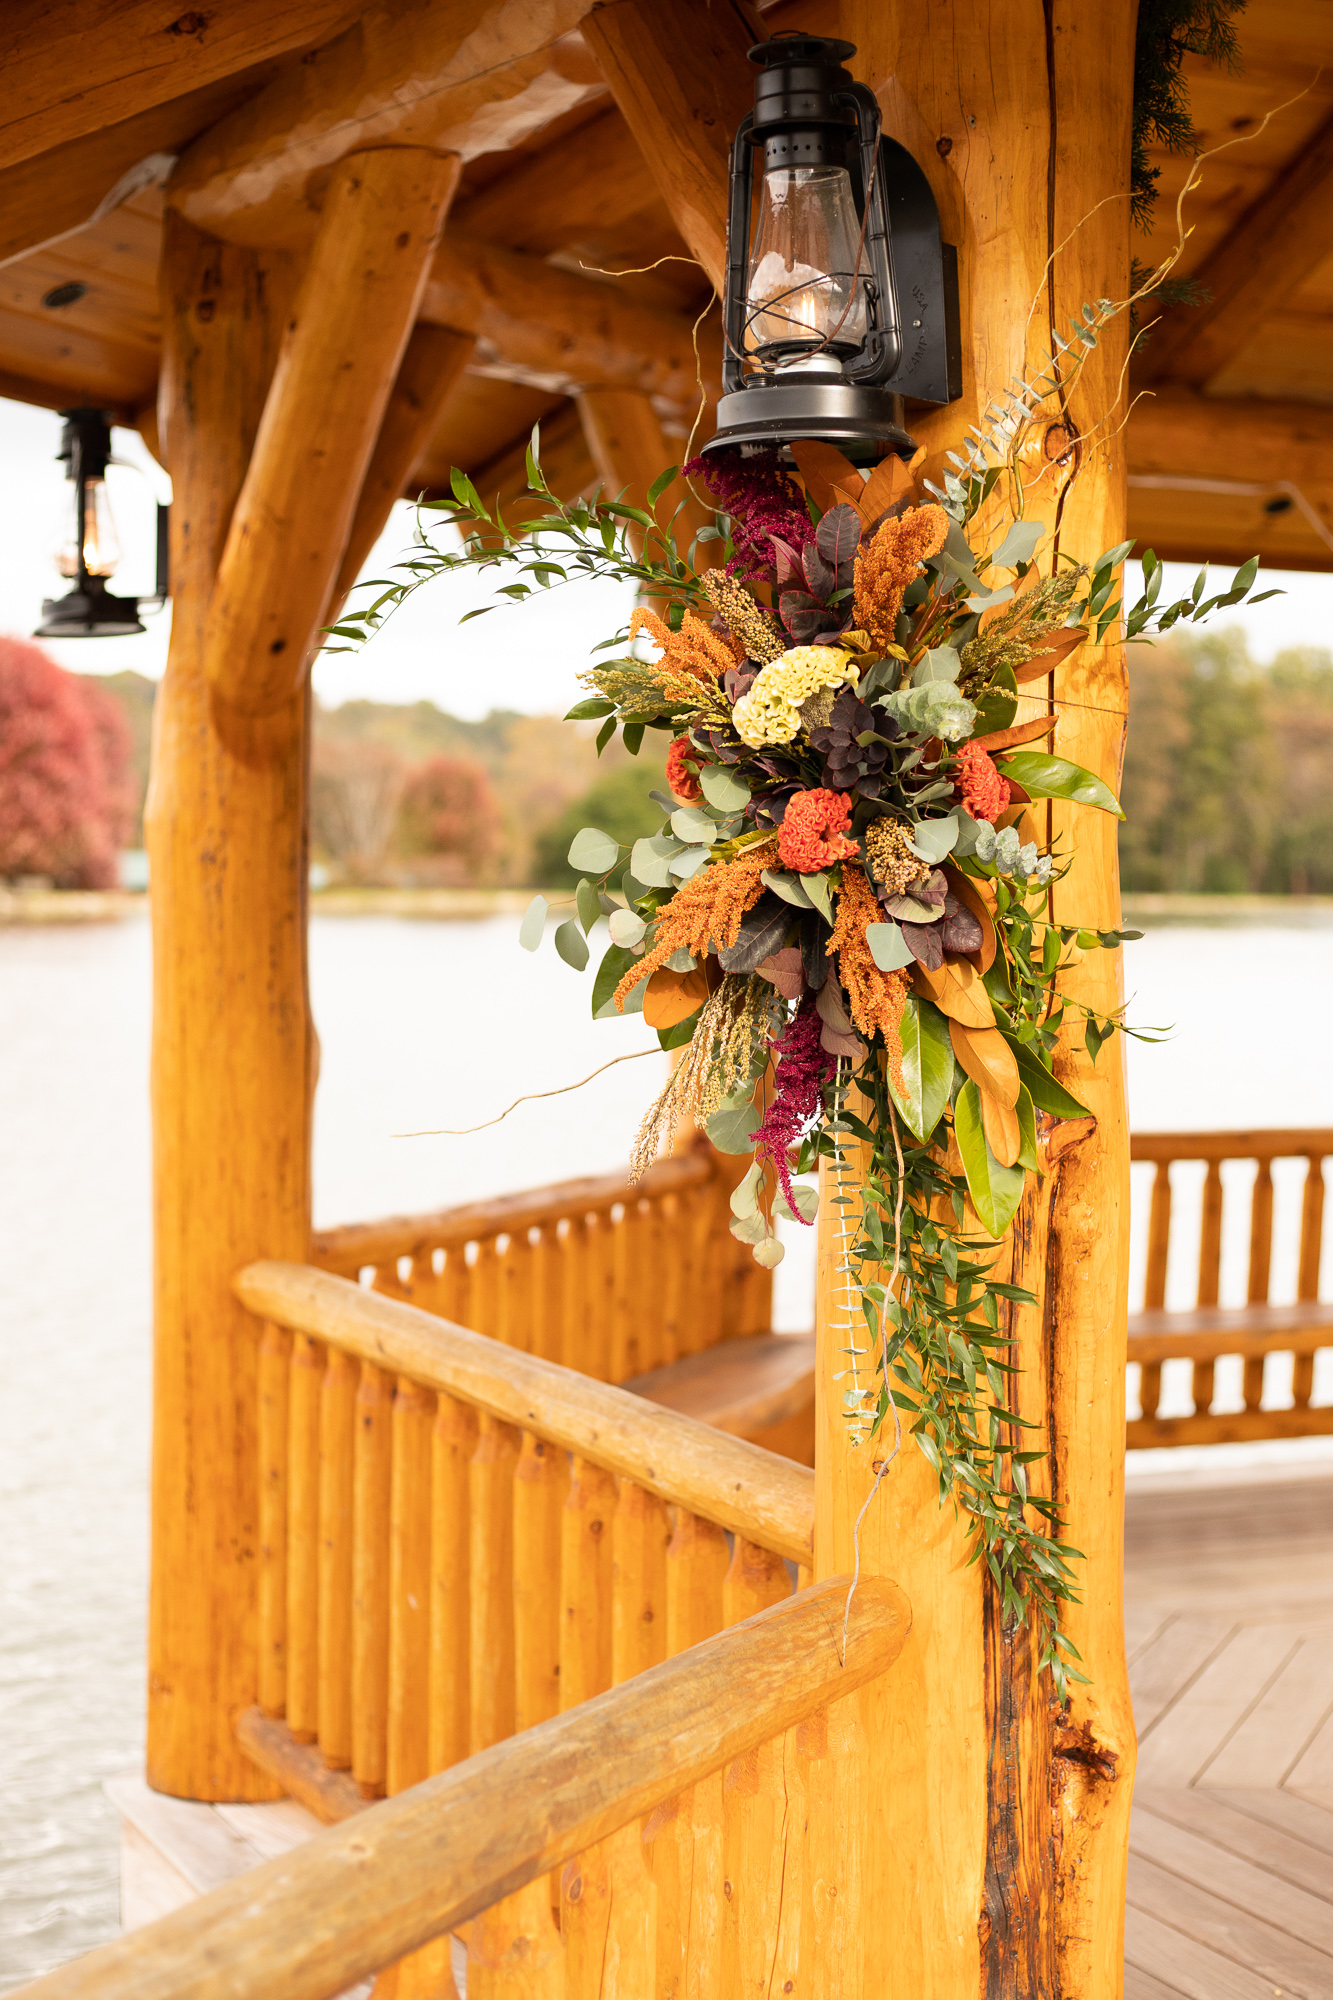 Posies by Patti flowers at The Gathering Place autumn styled shoot